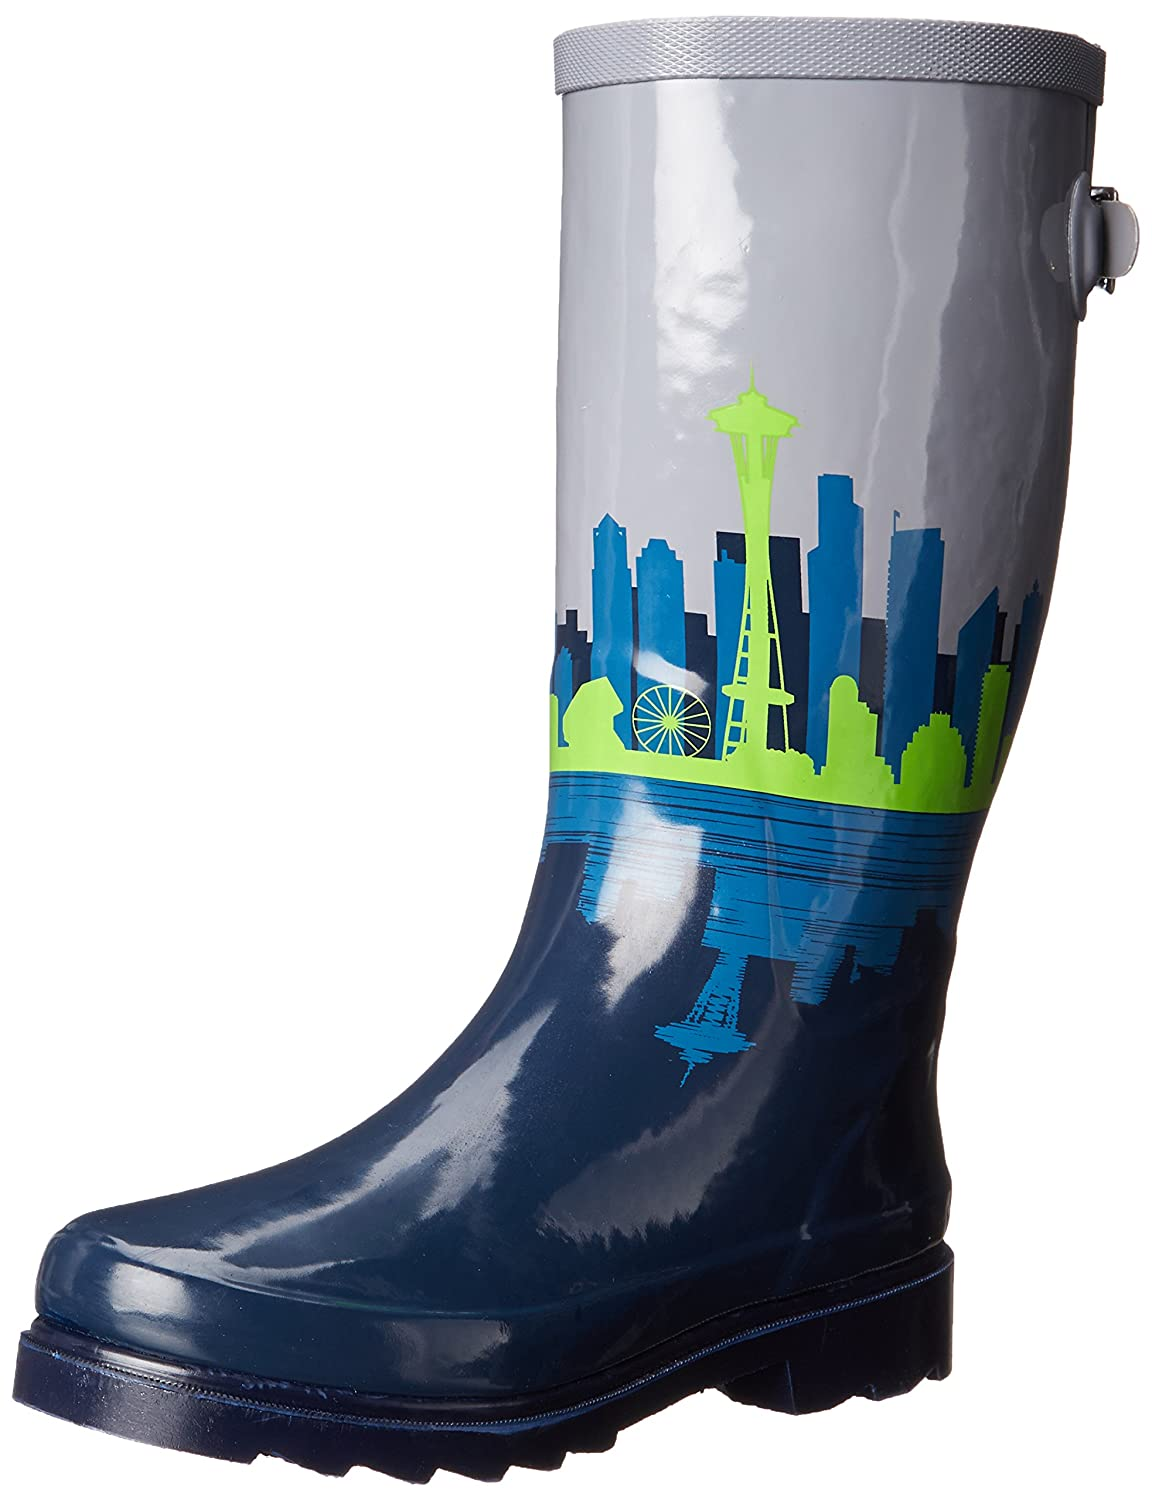 Chooka Women's Tall Rain Boot B010AZVYEA 8 B(M) US|Skyline